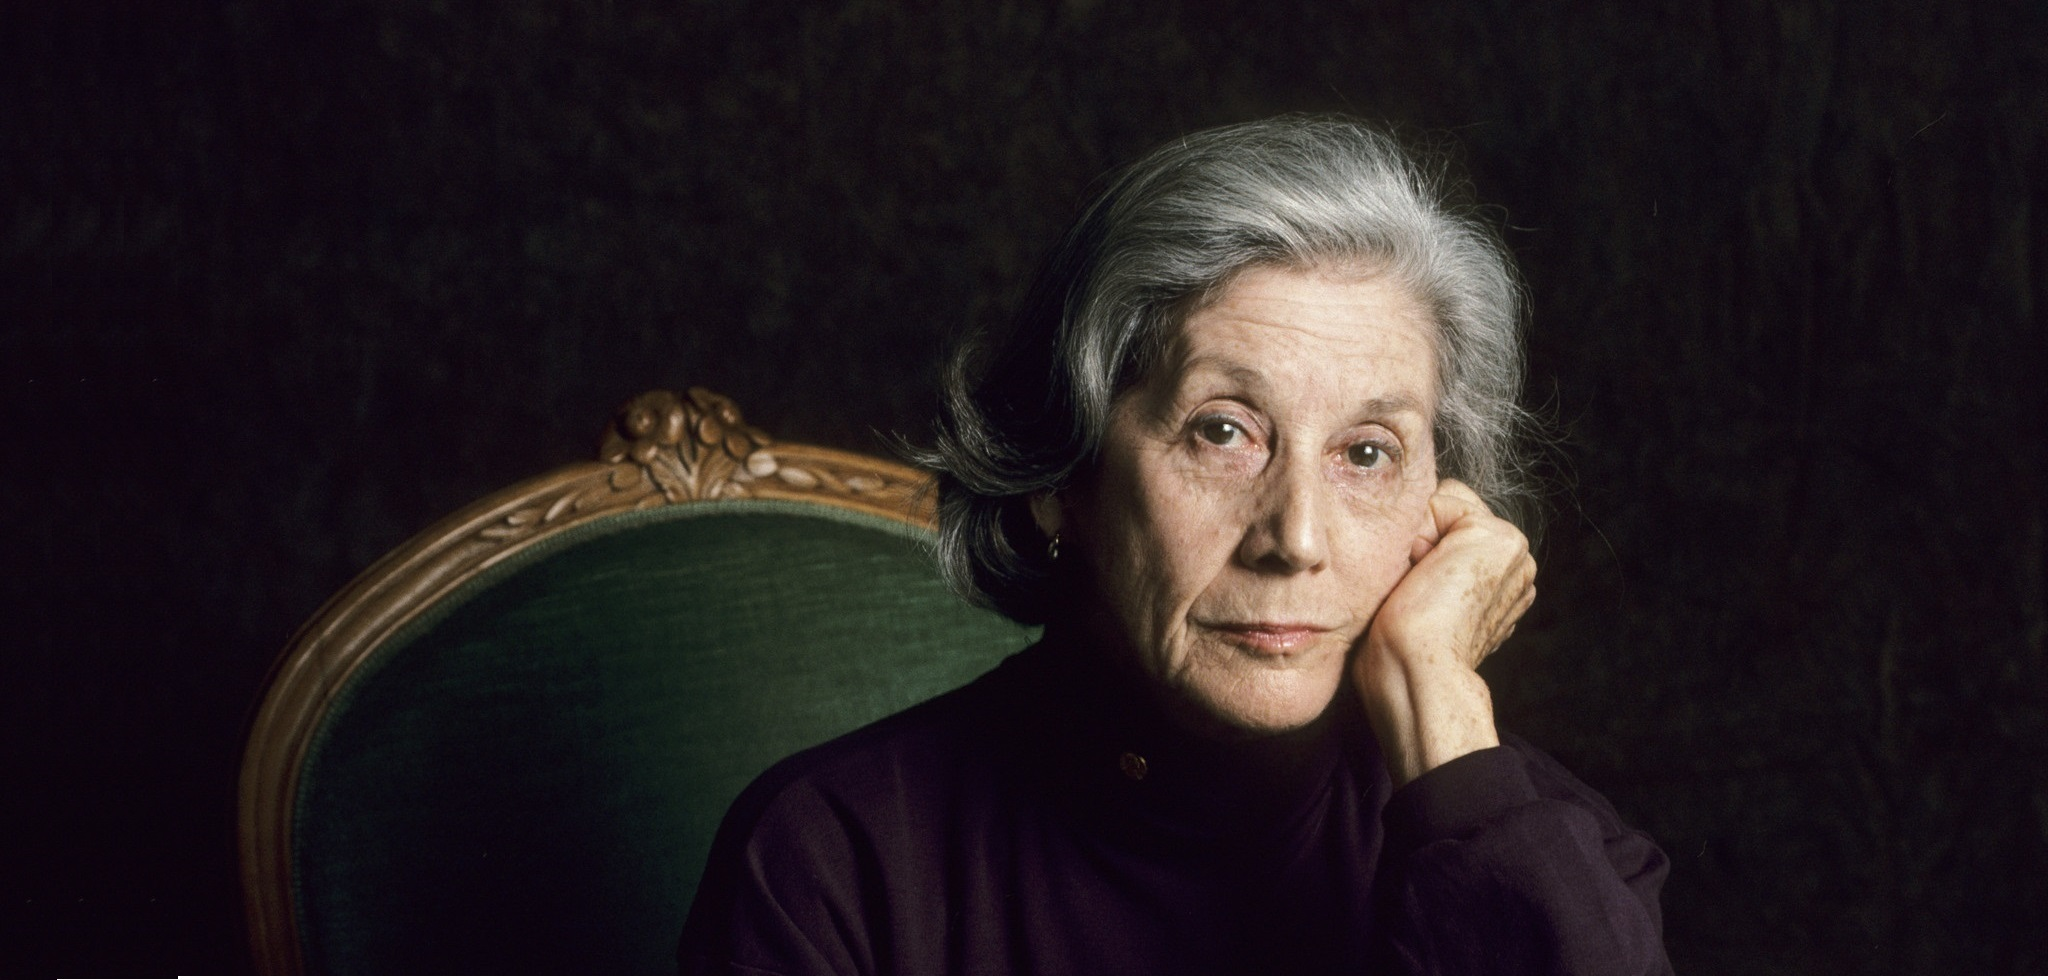 PARIS;FRANCE - JANUARY 25: South African author Nadine Gordimer poses while in Paris,France to promote her book on the 25th of January 1993. (Photo by Ulf Andersen/Getty Images)